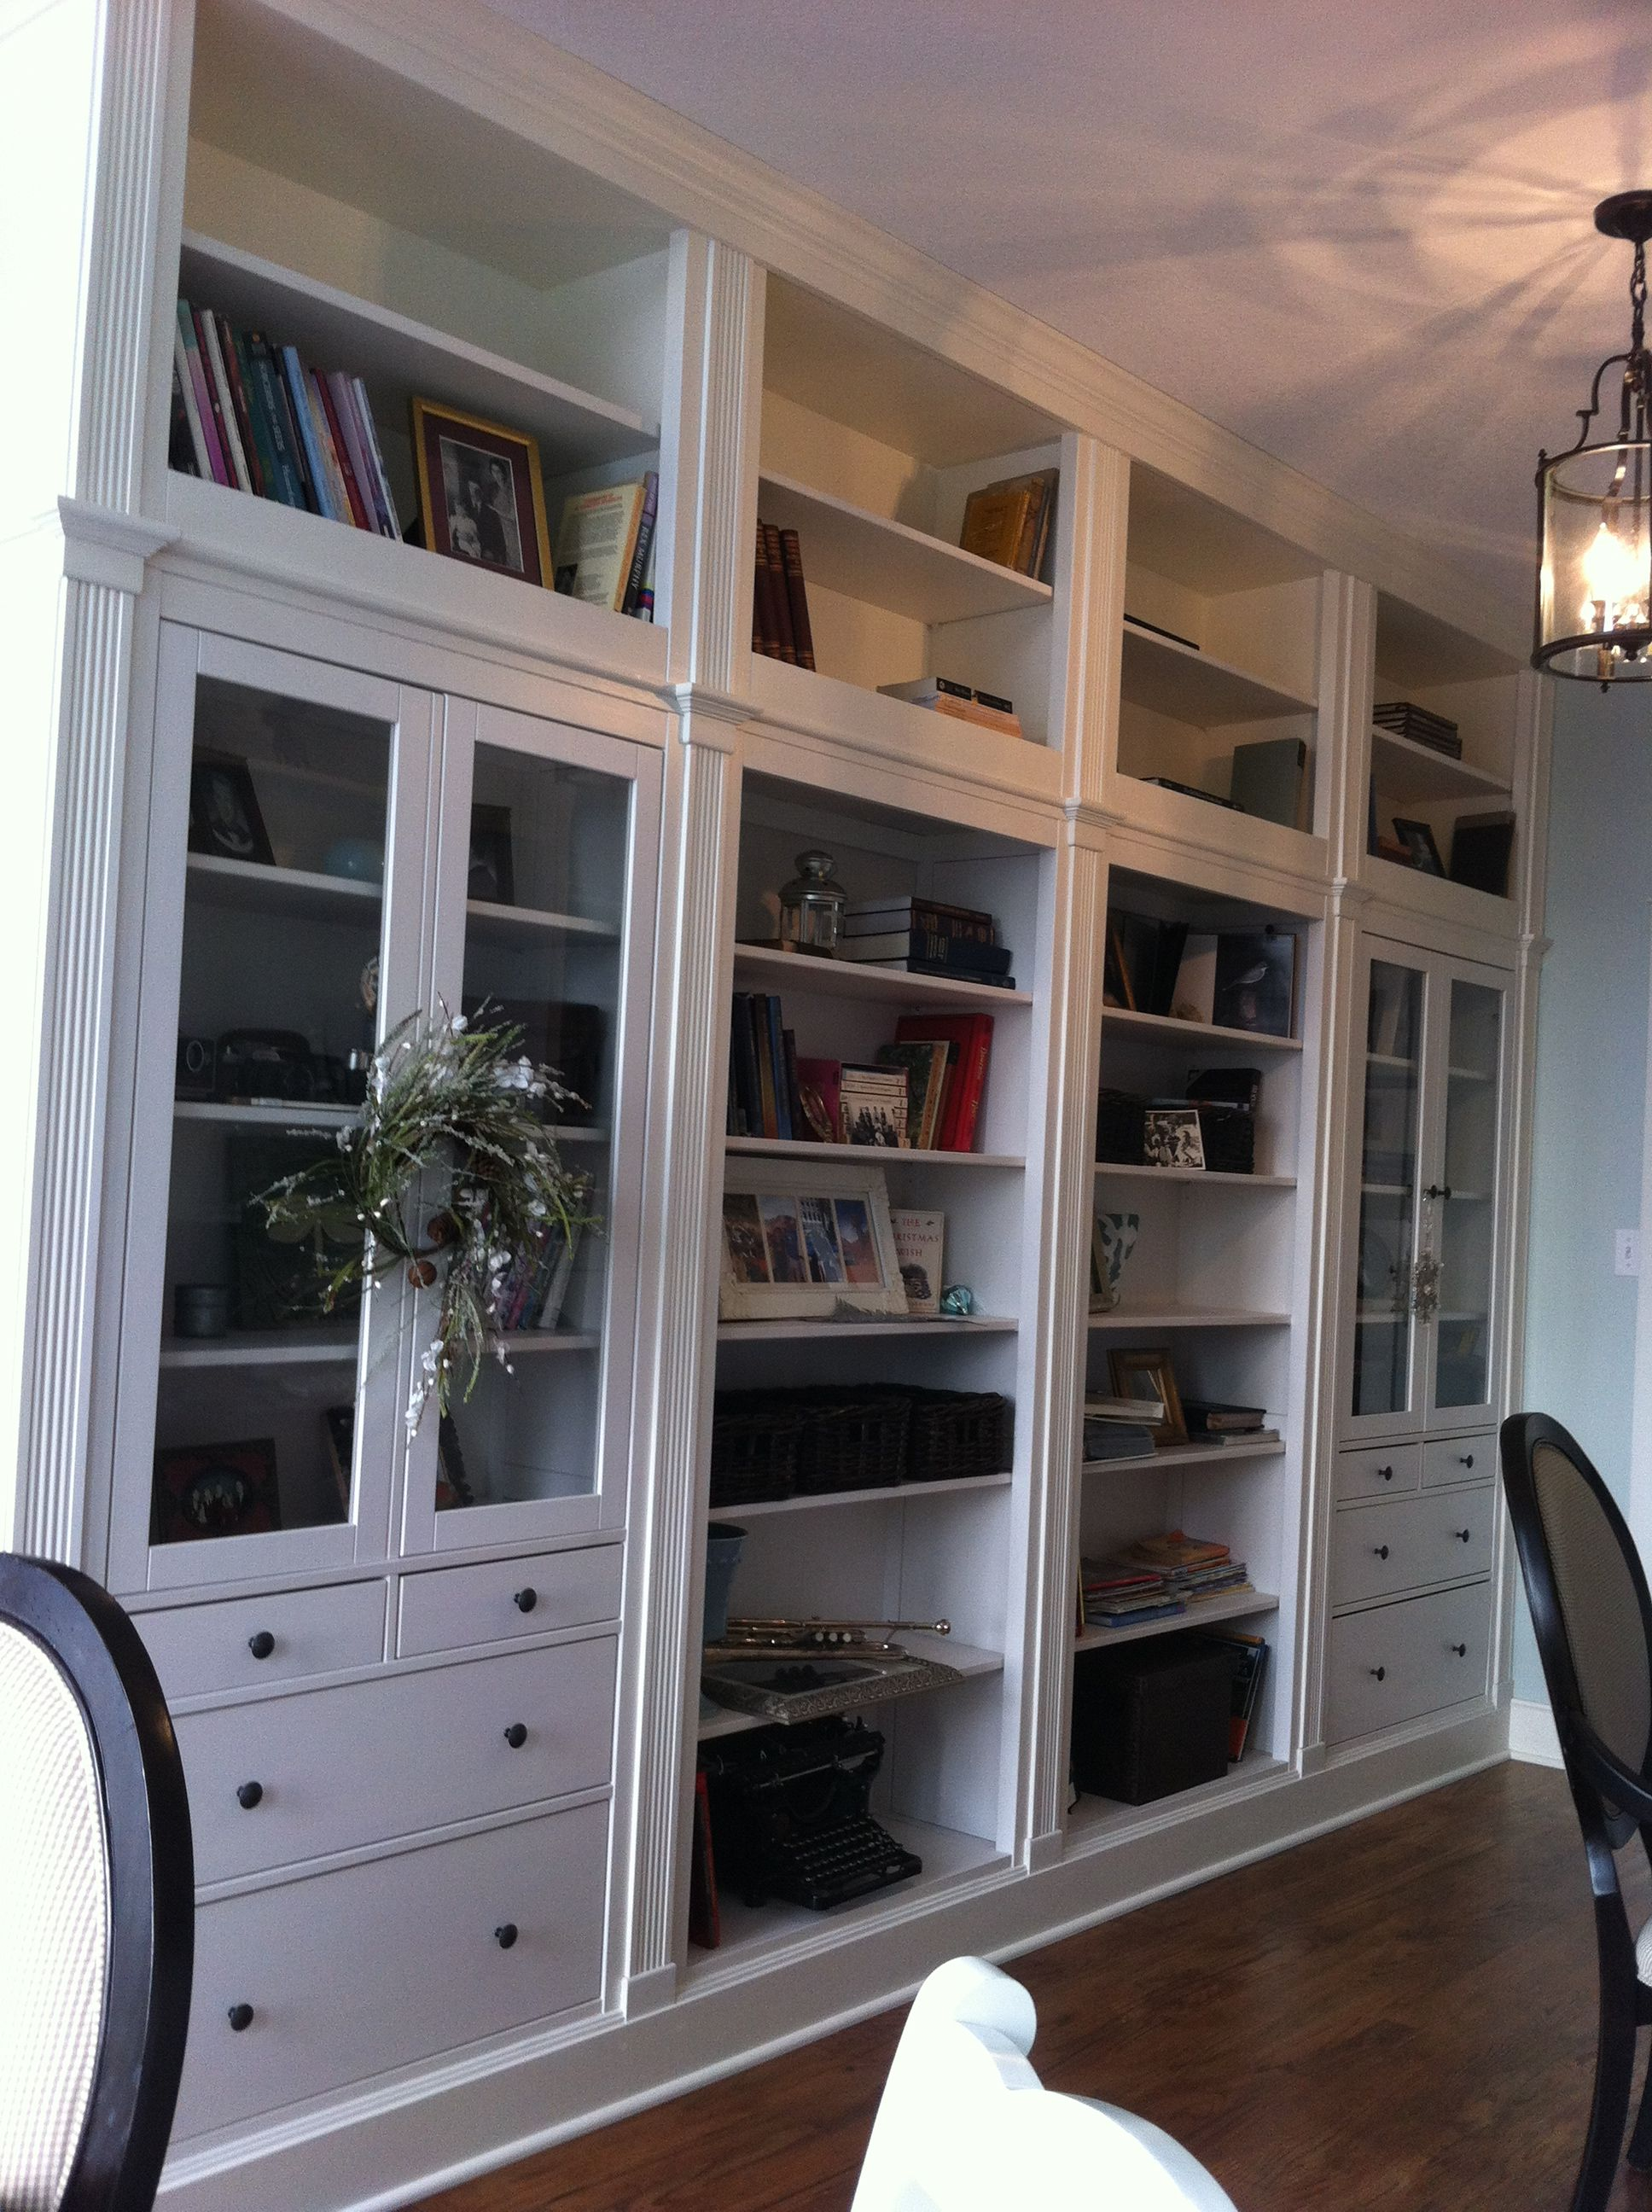 Hemnes Items From Ikea Crazy Built In Effect I Want This For My Future Closet